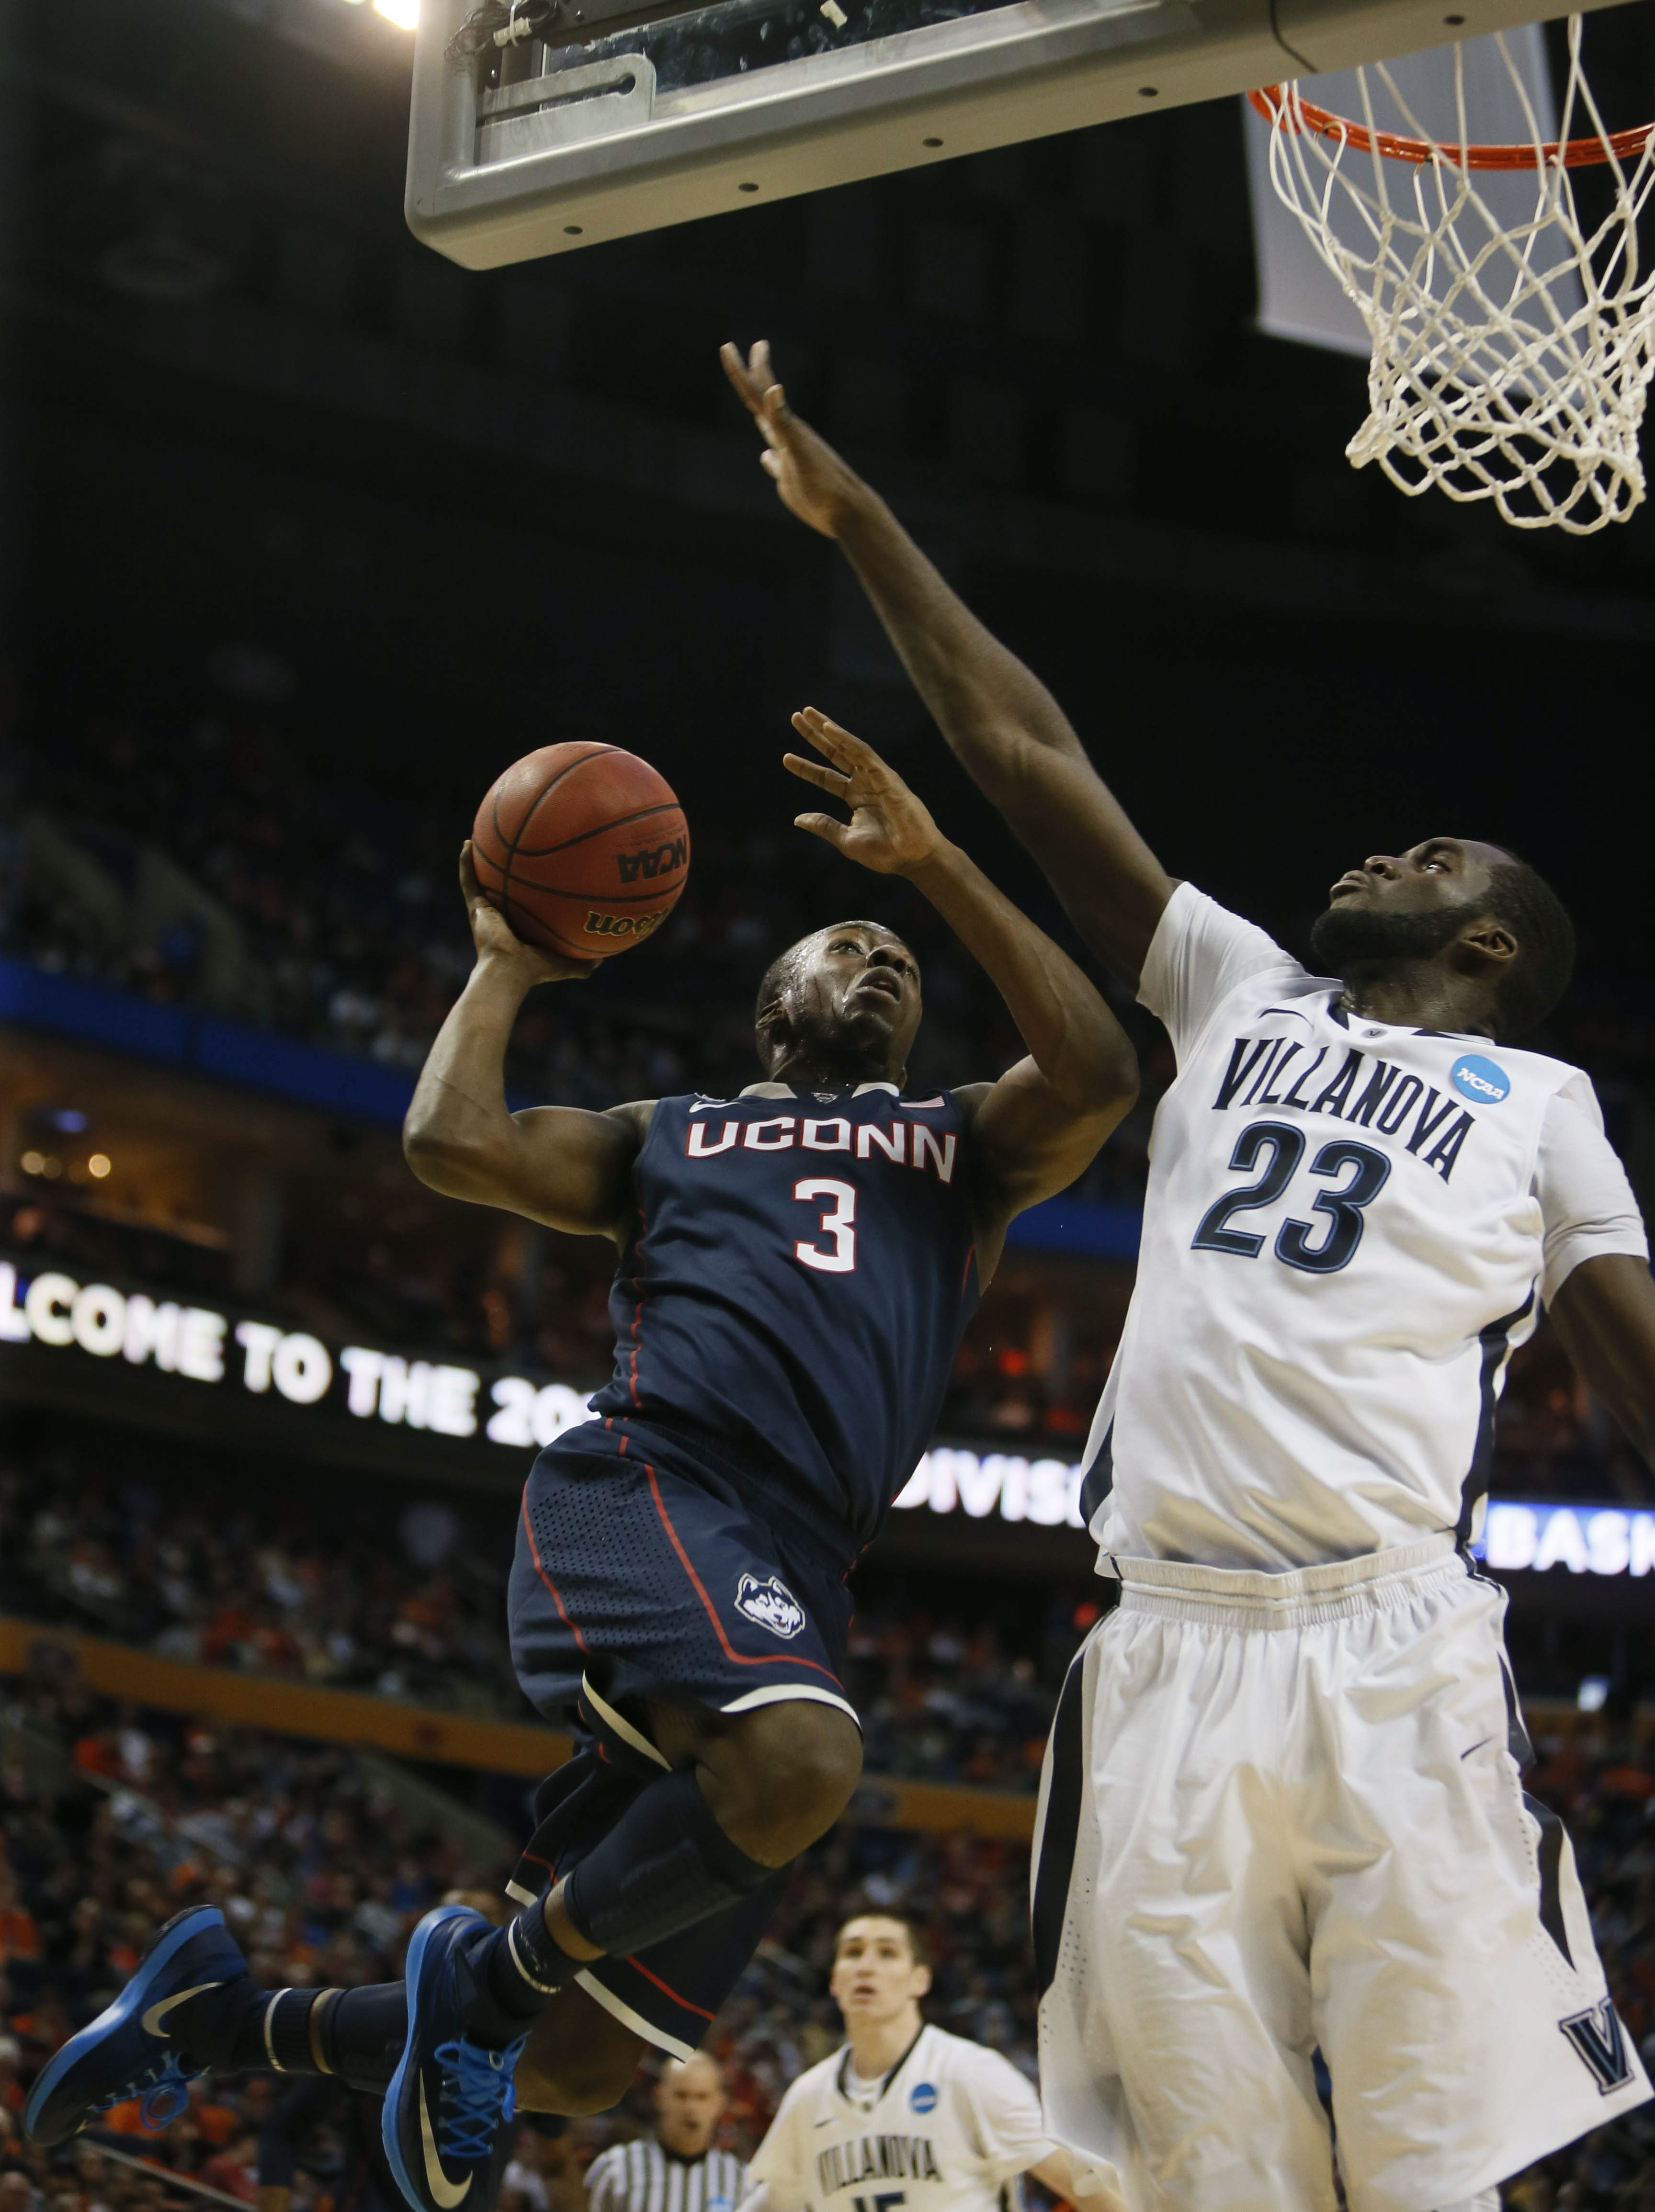 UConn's Terrence Samuel goes up for a shot against Villanova's Daniel Ochefu during the first half of Saturday's game. UConn erased a 10-point deficit to earn the victory.